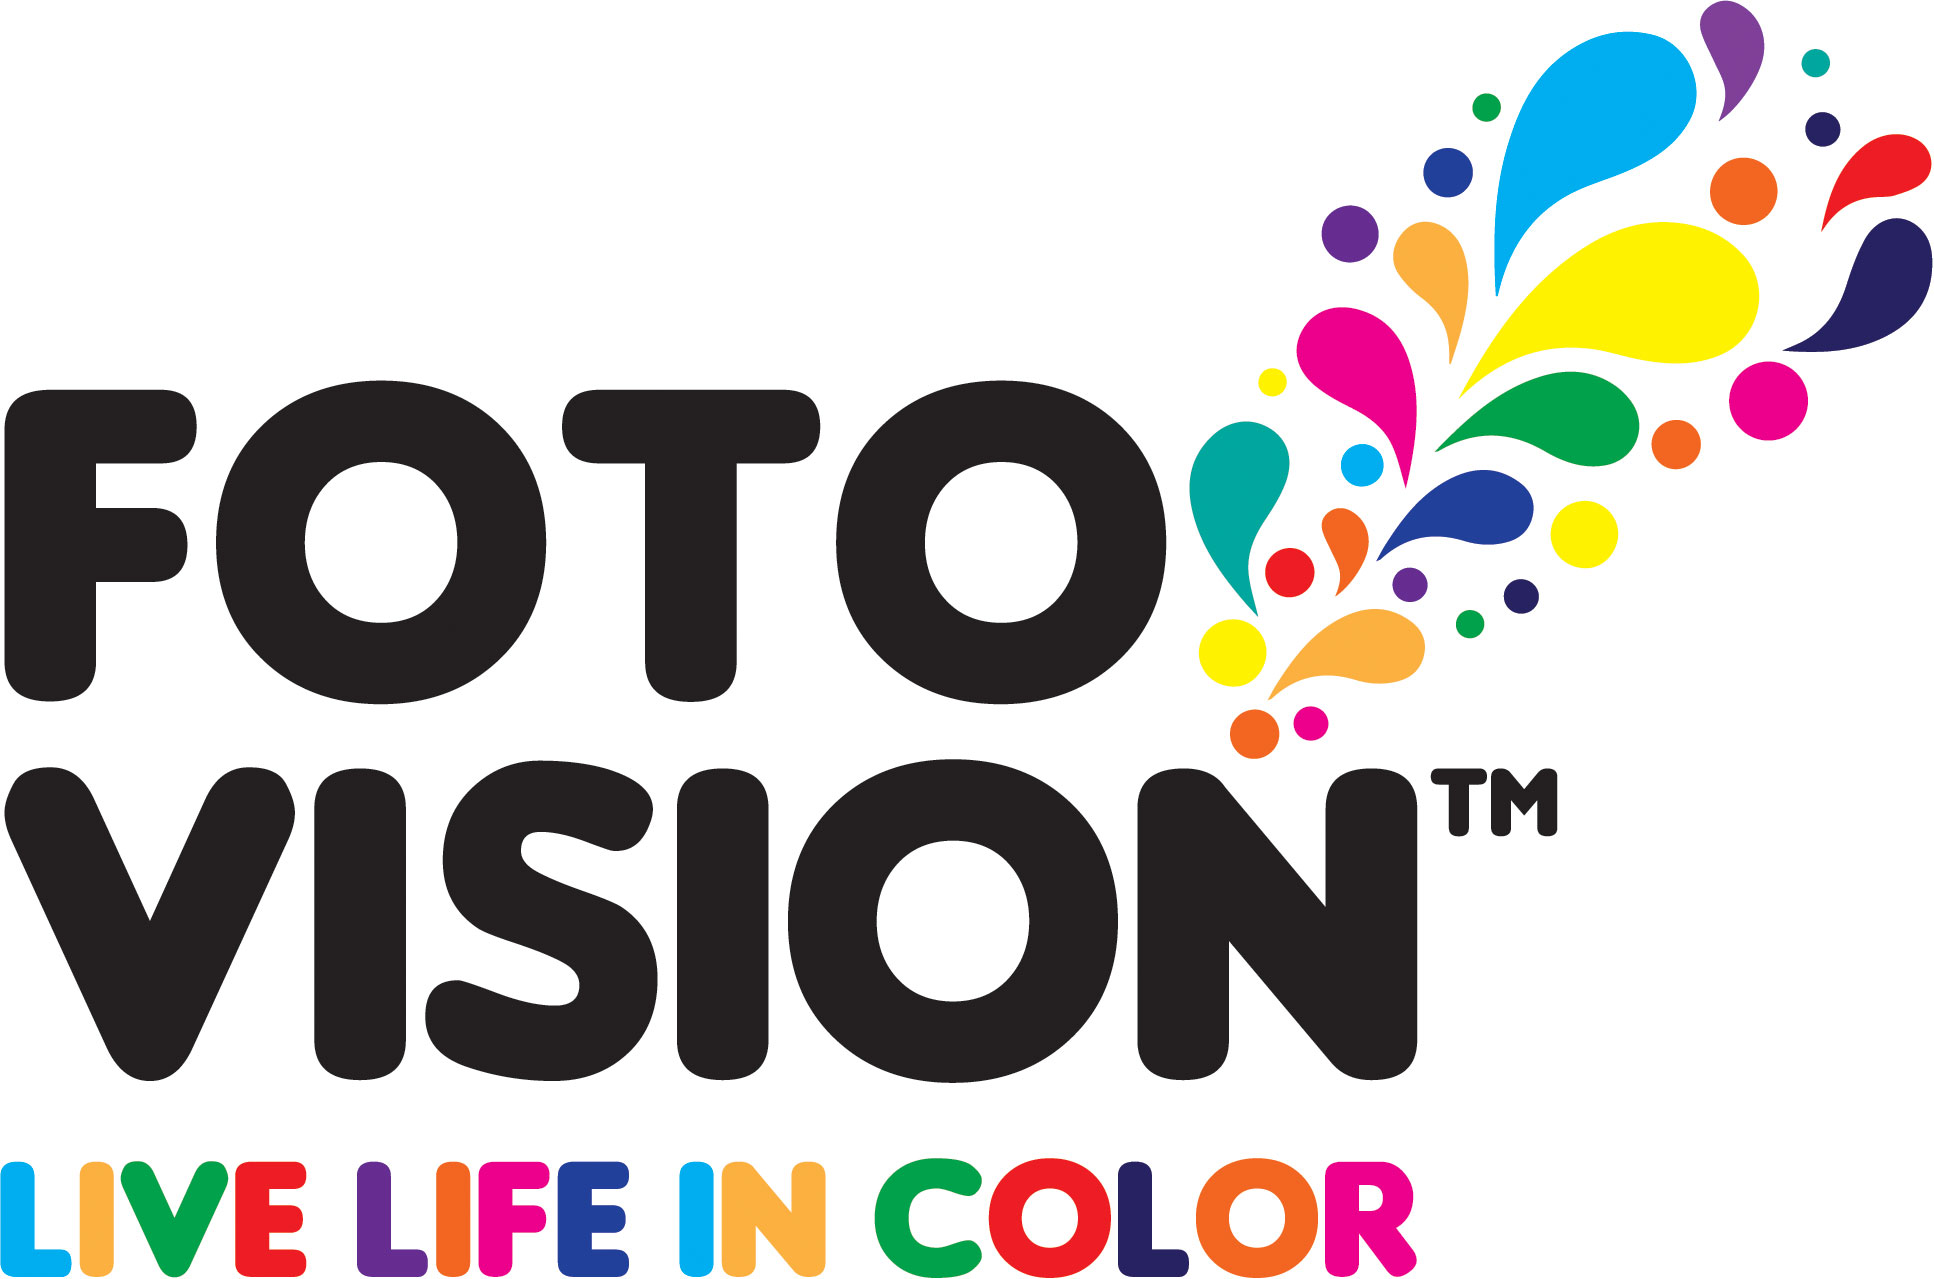 FOTO Vision - Live Life in Color